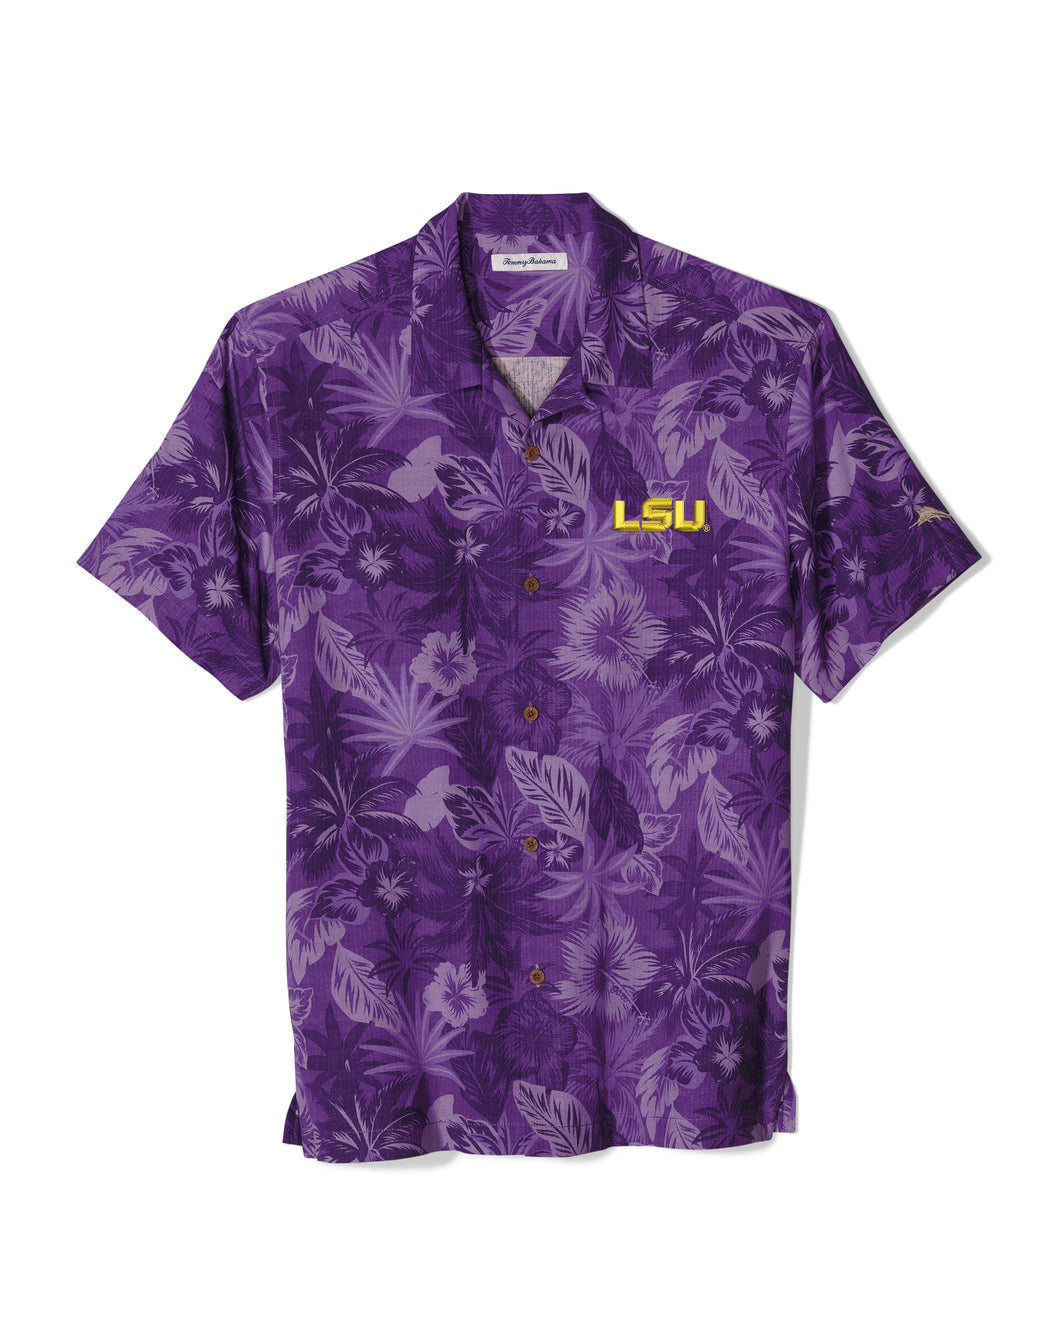 LSU Tigers Tommy Bahama Camp Shirt Floral